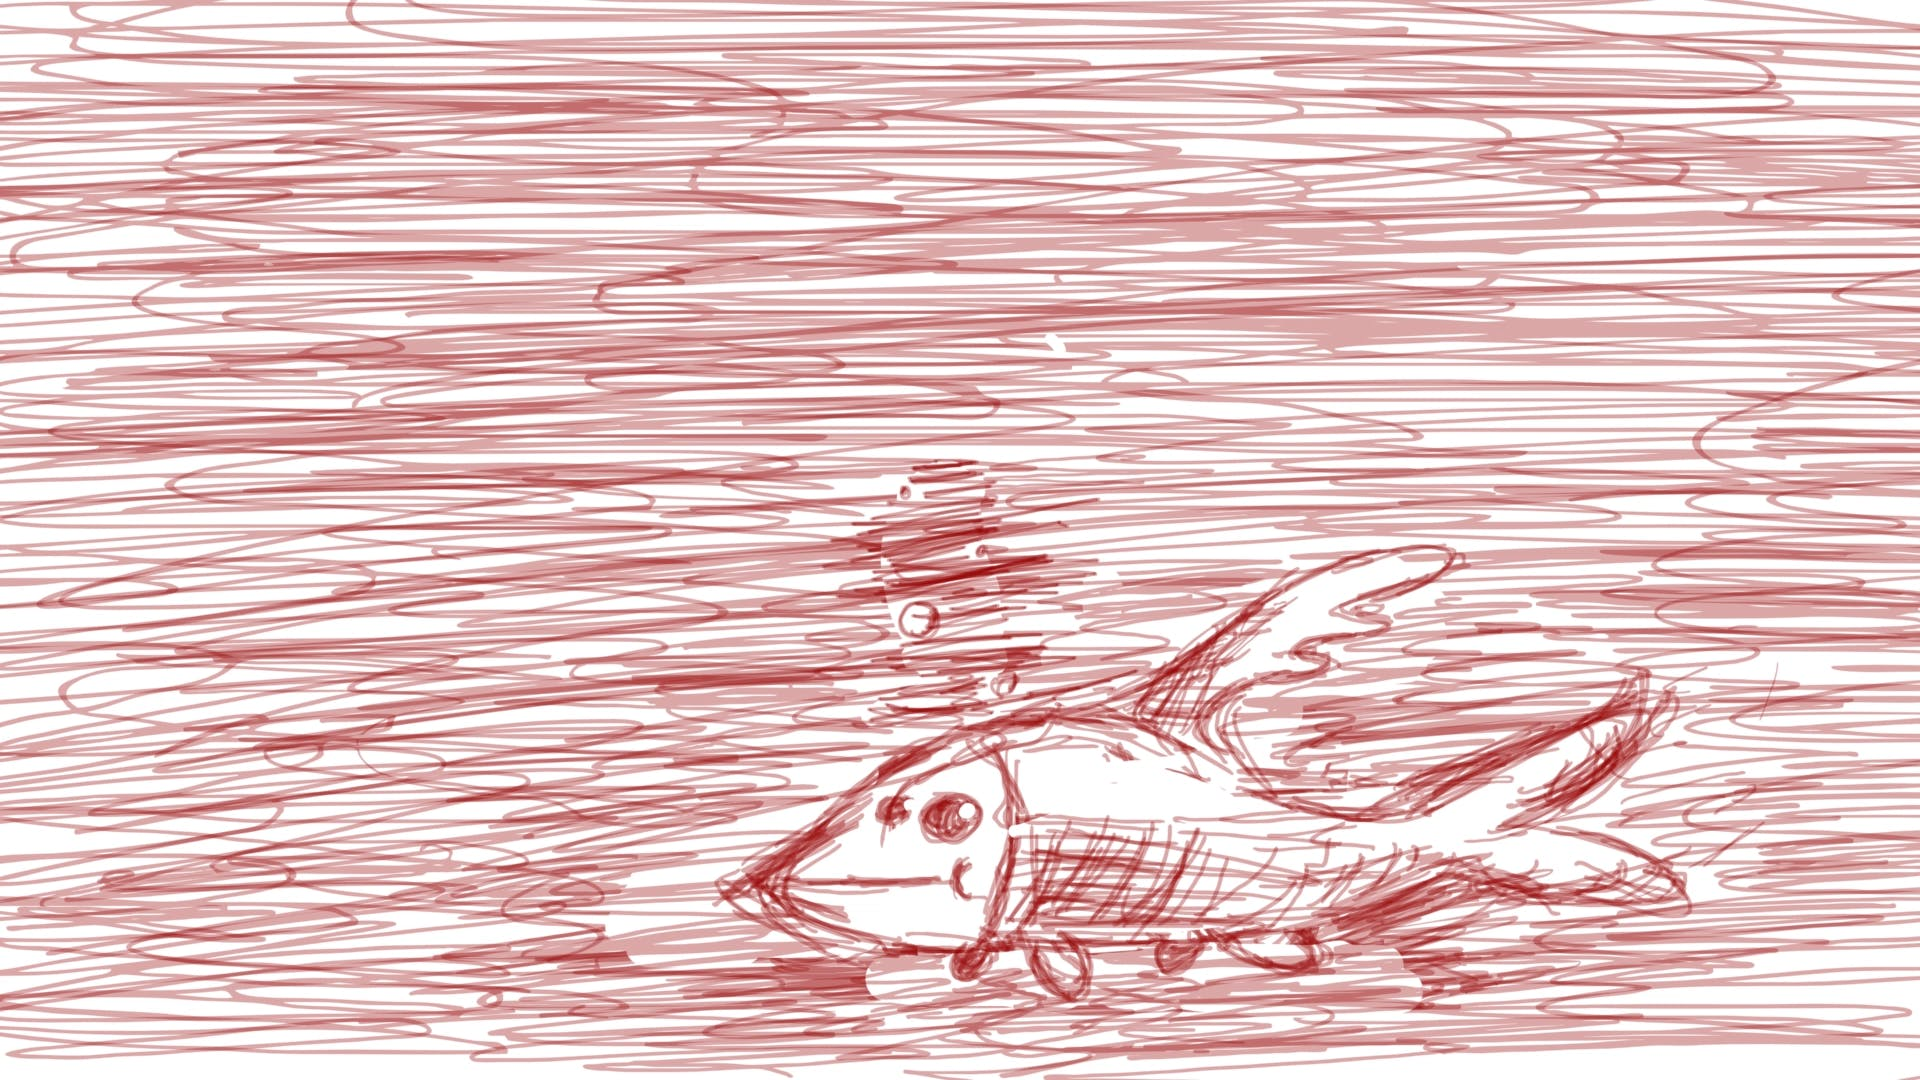 A drawing all in red pen, with a fish in the corner